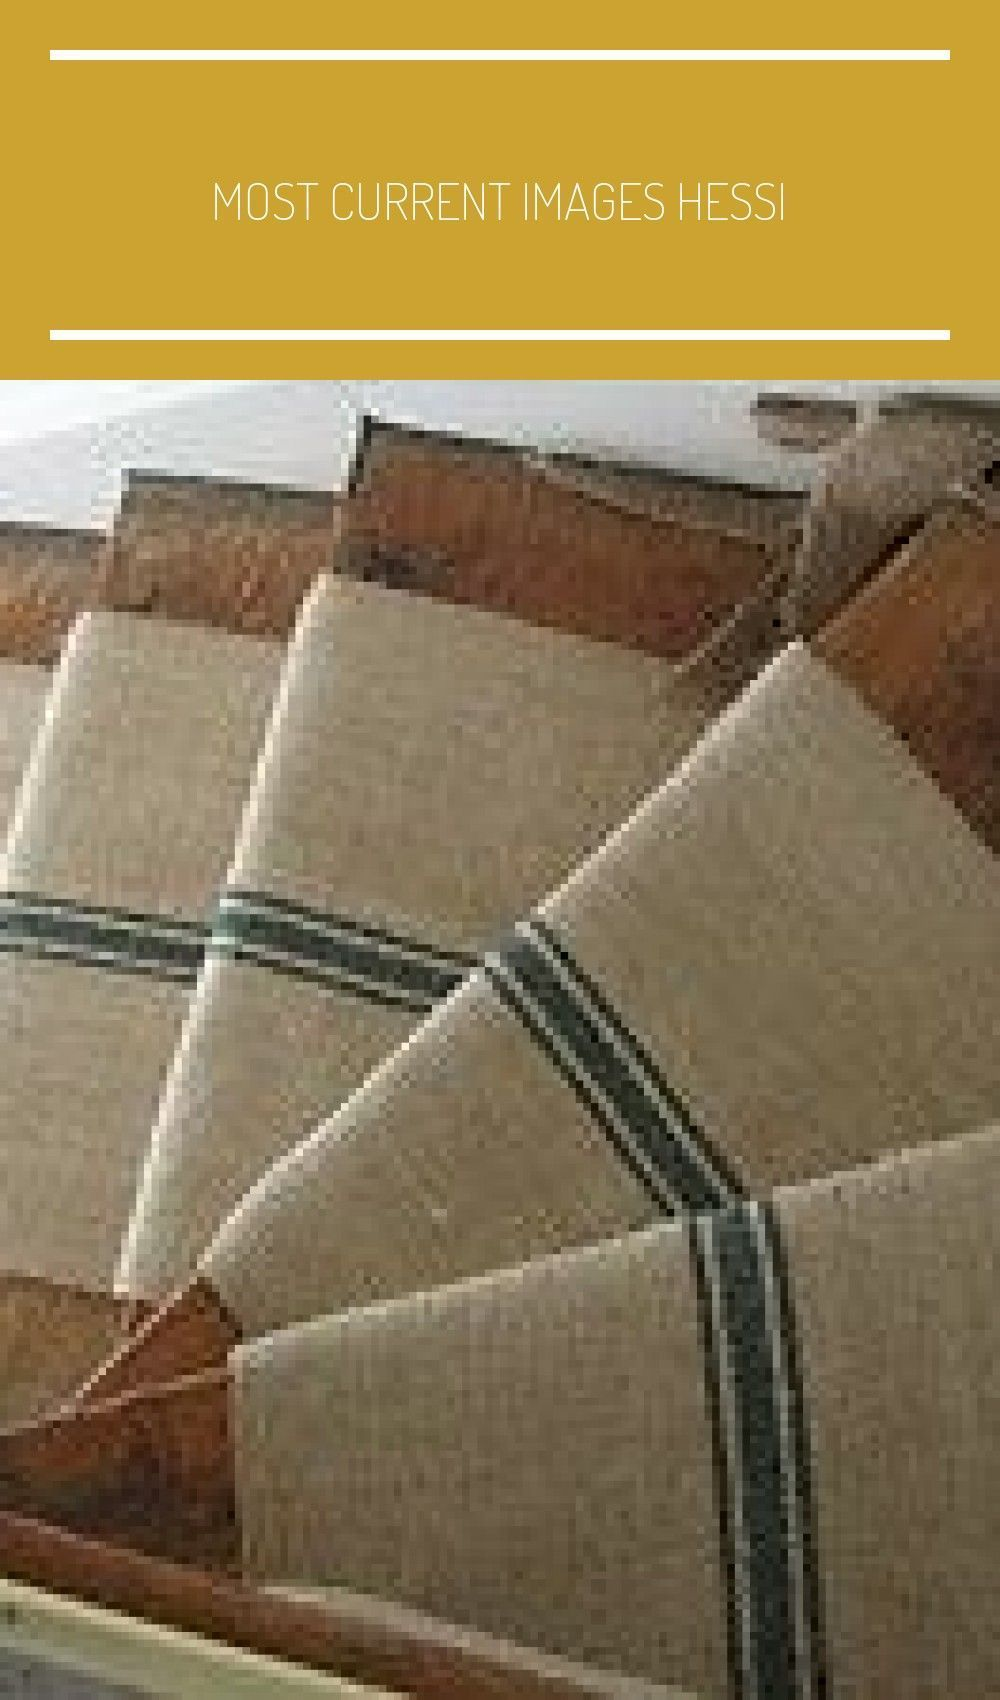 Best Most Current Images Hessian Carpet Stairs Popular One Of The Fastest Ways To Rev… Most Current 400 x 300